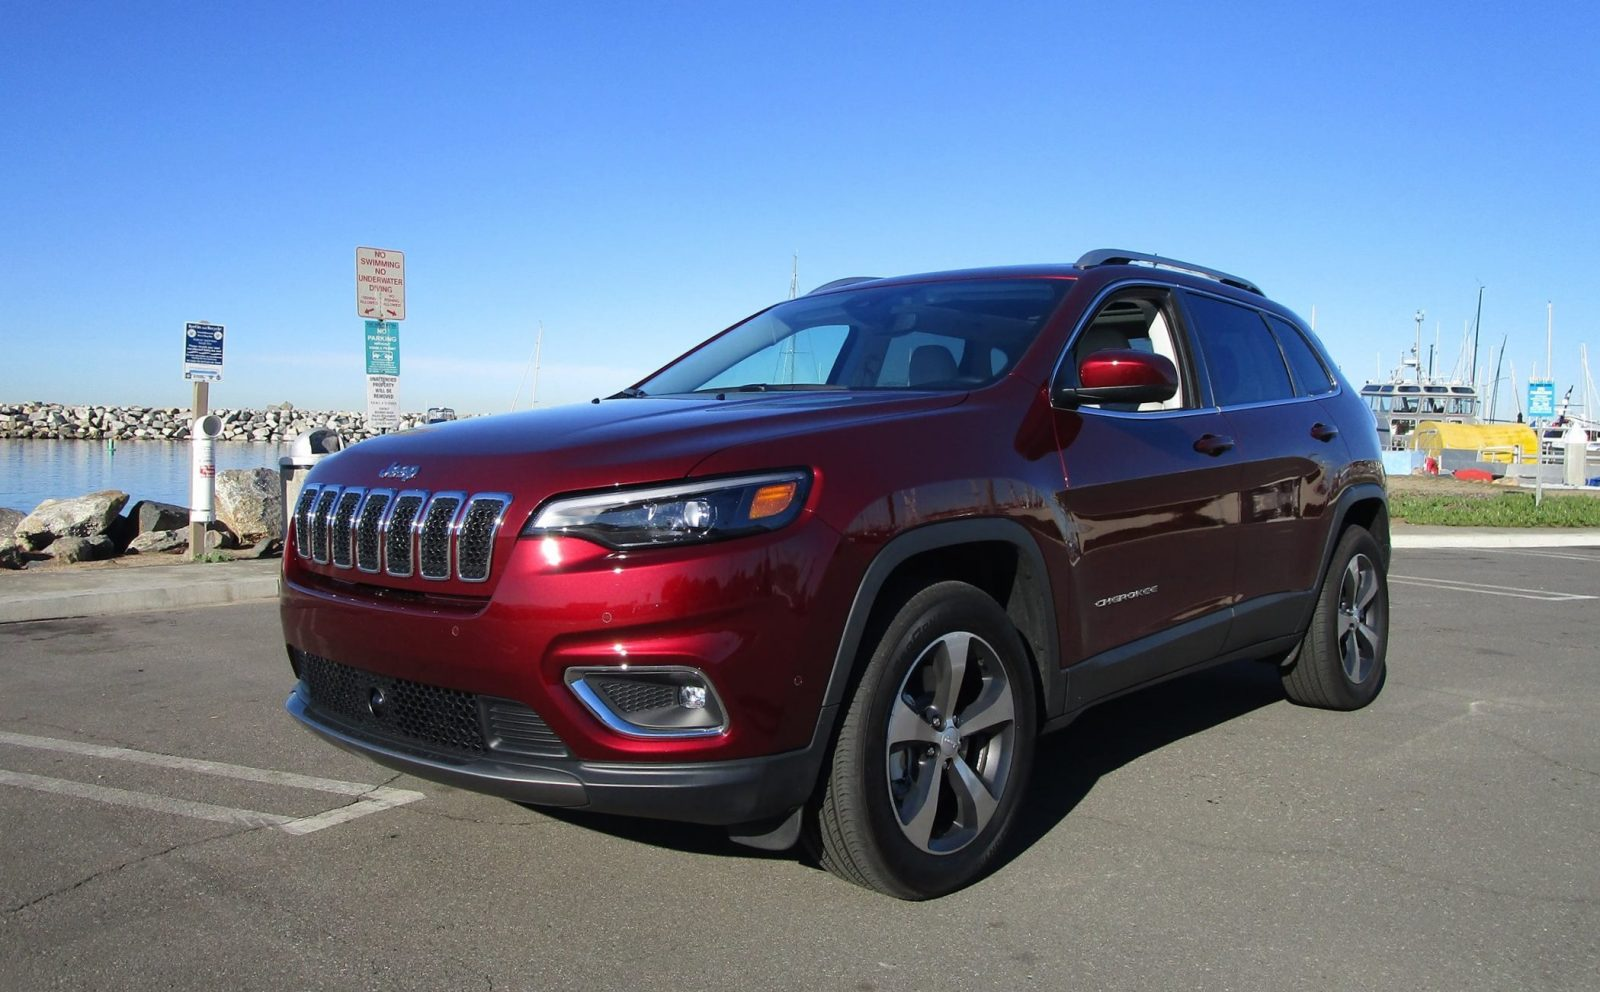 2019 jeep cherokee limited 4x4 road test review by ben. Black Bedroom Furniture Sets. Home Design Ideas